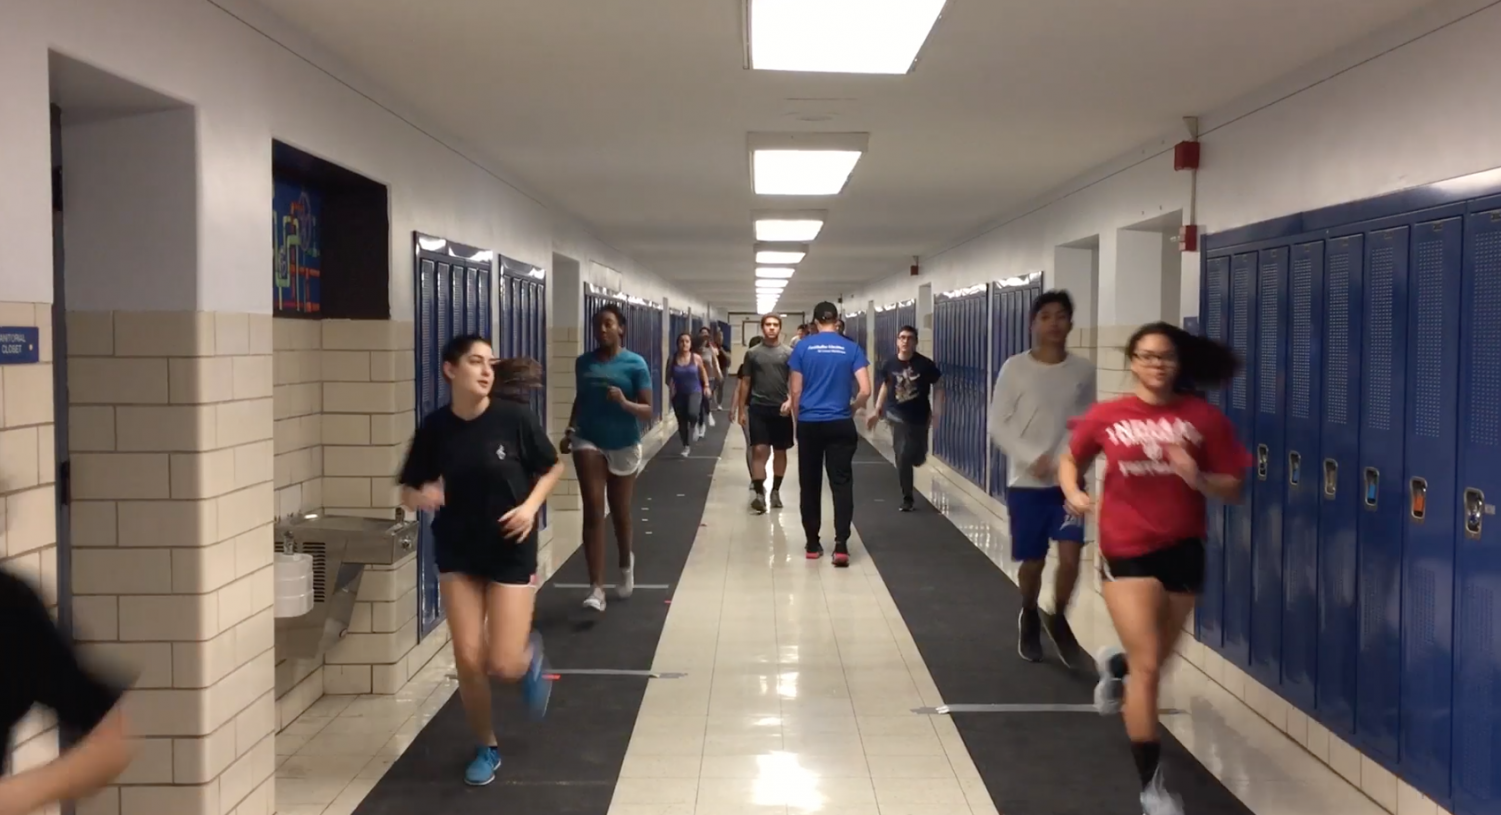 Track and Field members practicing in the halls.